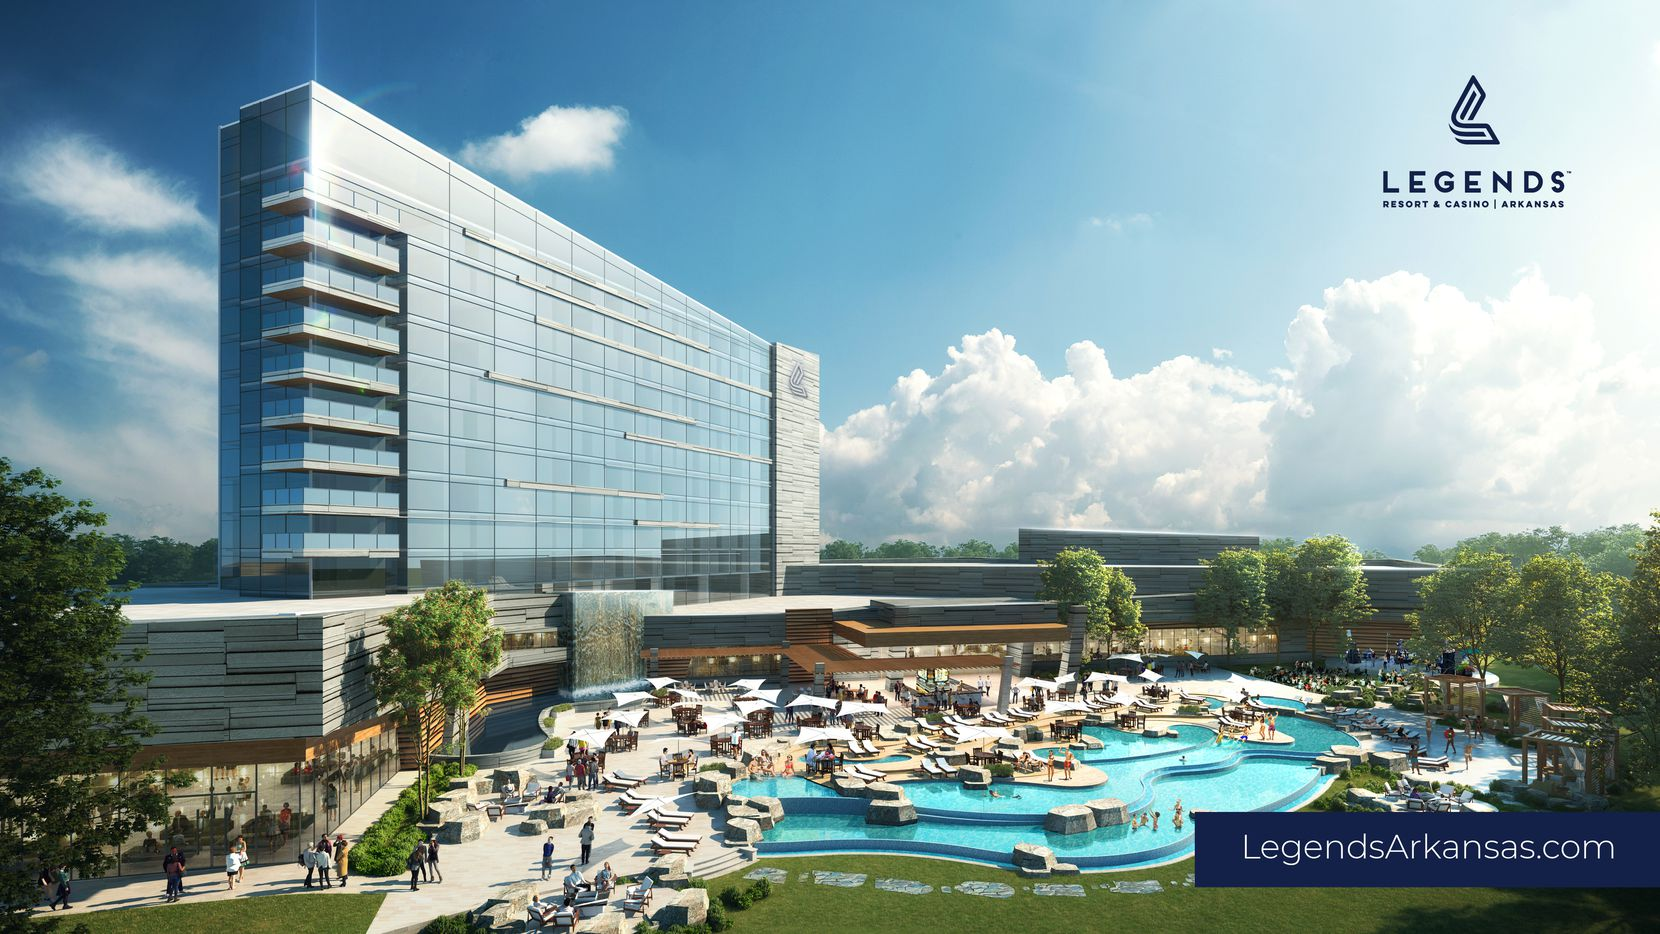 The Legends Resort & Casino Arkansas will feature a 200-room luxury hotel and outdoor water park.